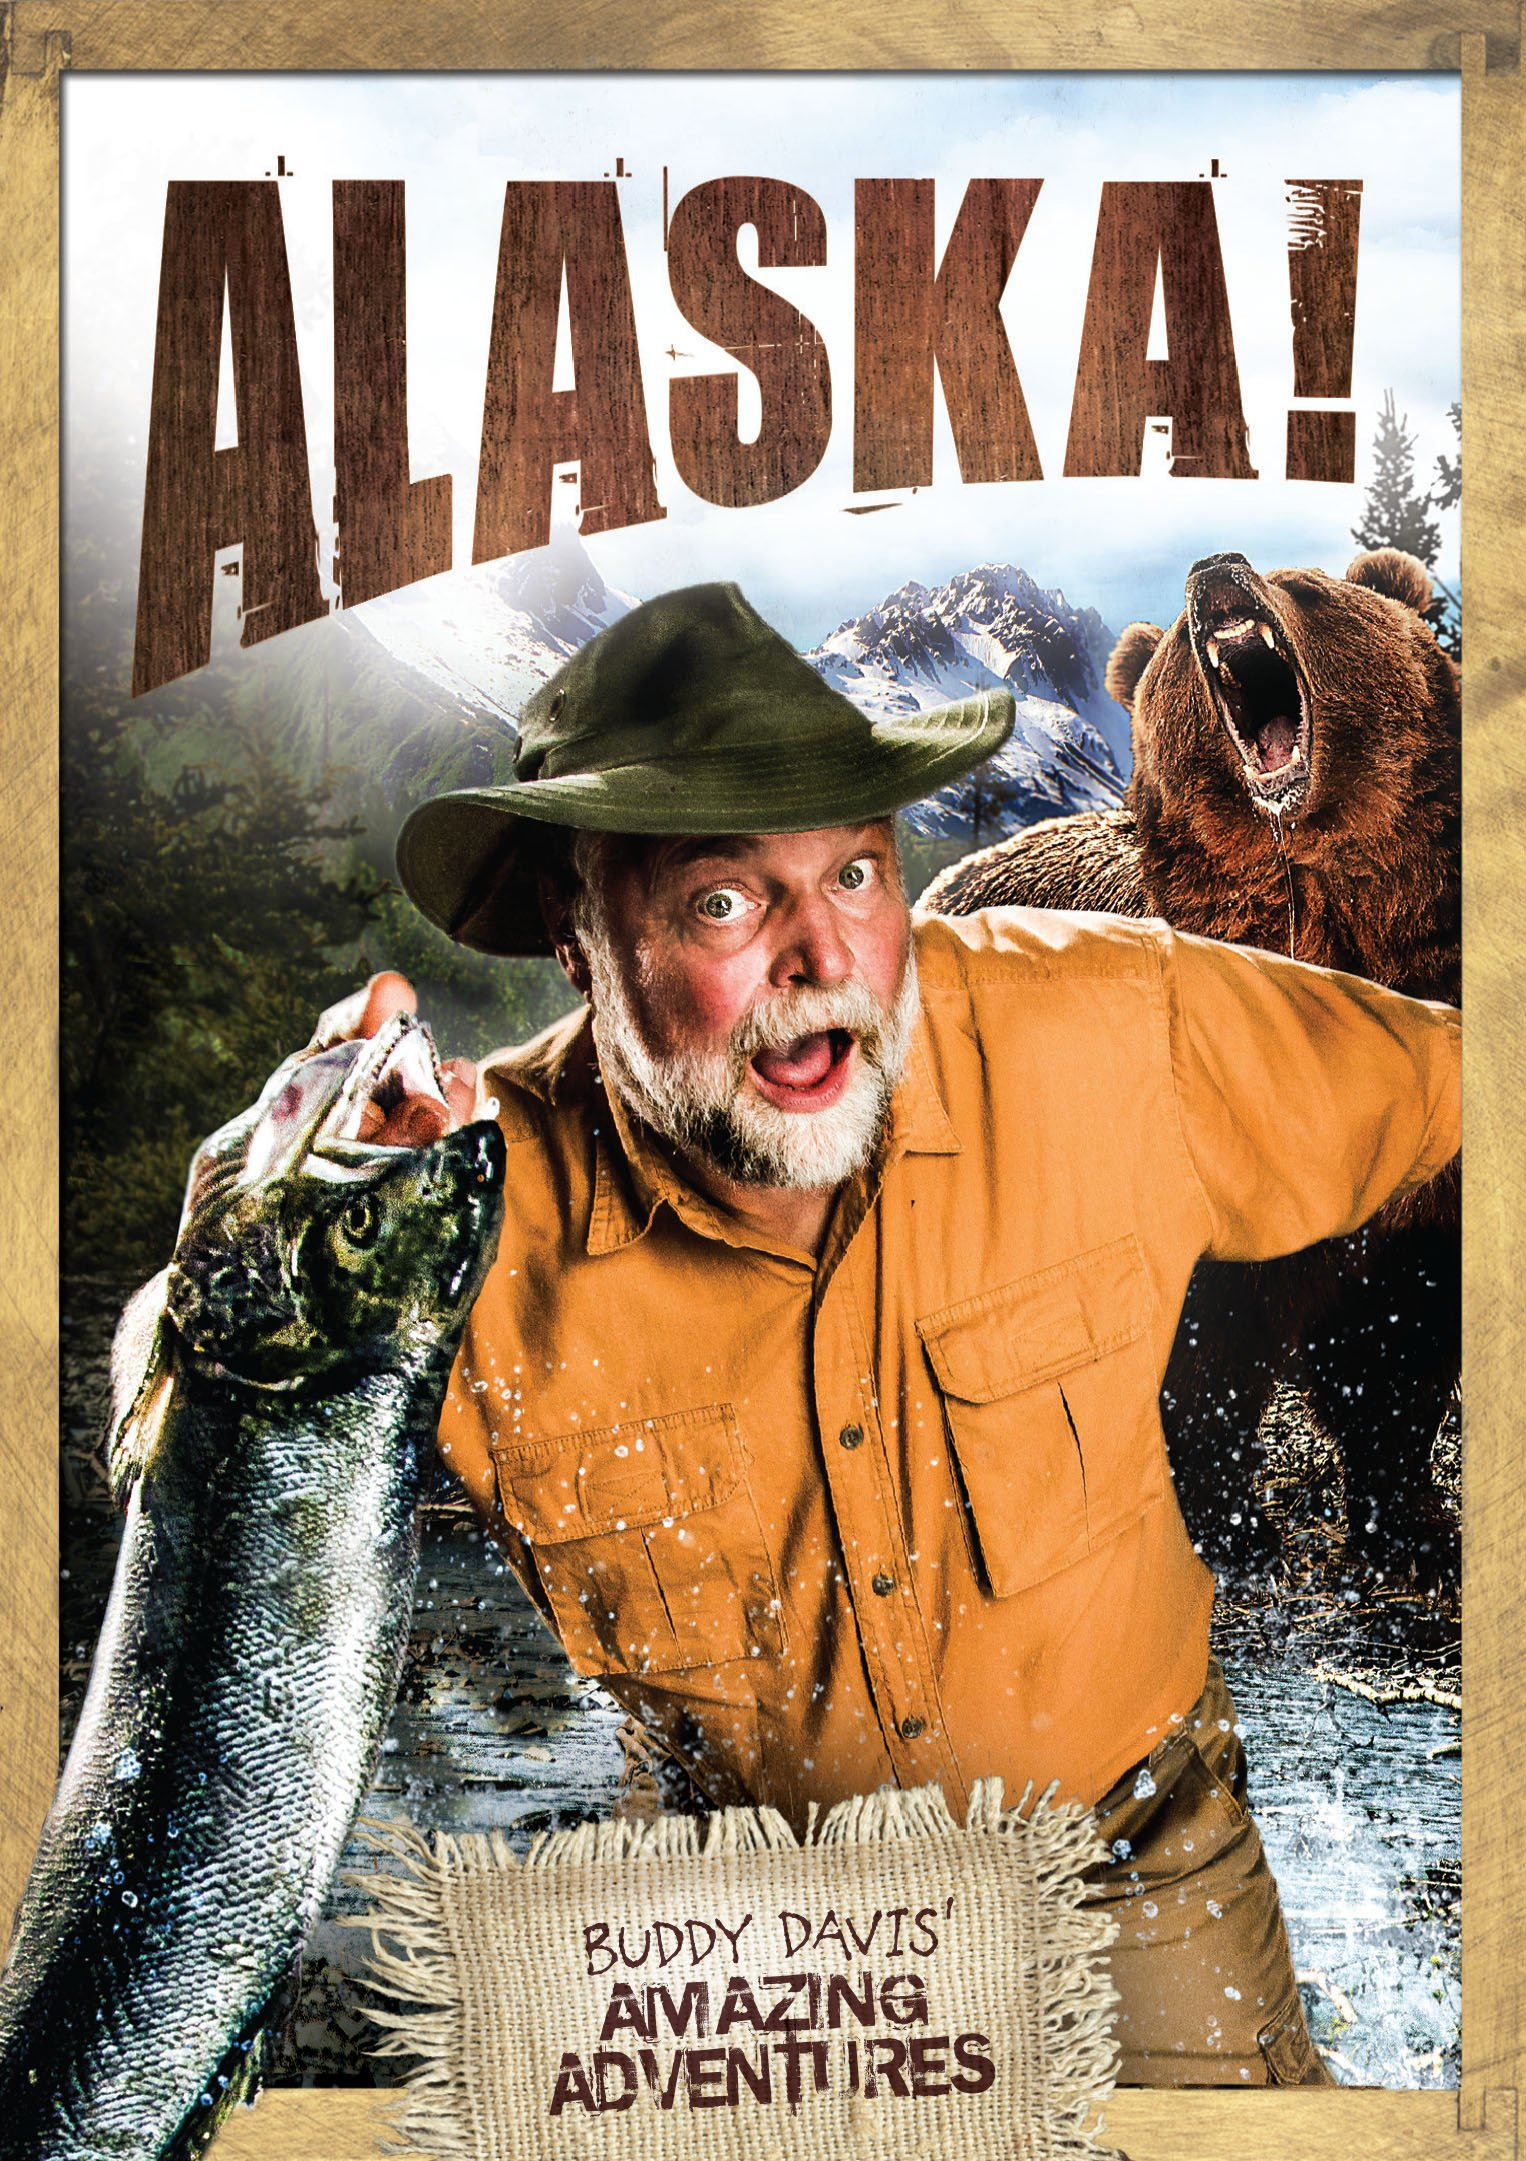 Buddy Davis' Alaskan Adventure